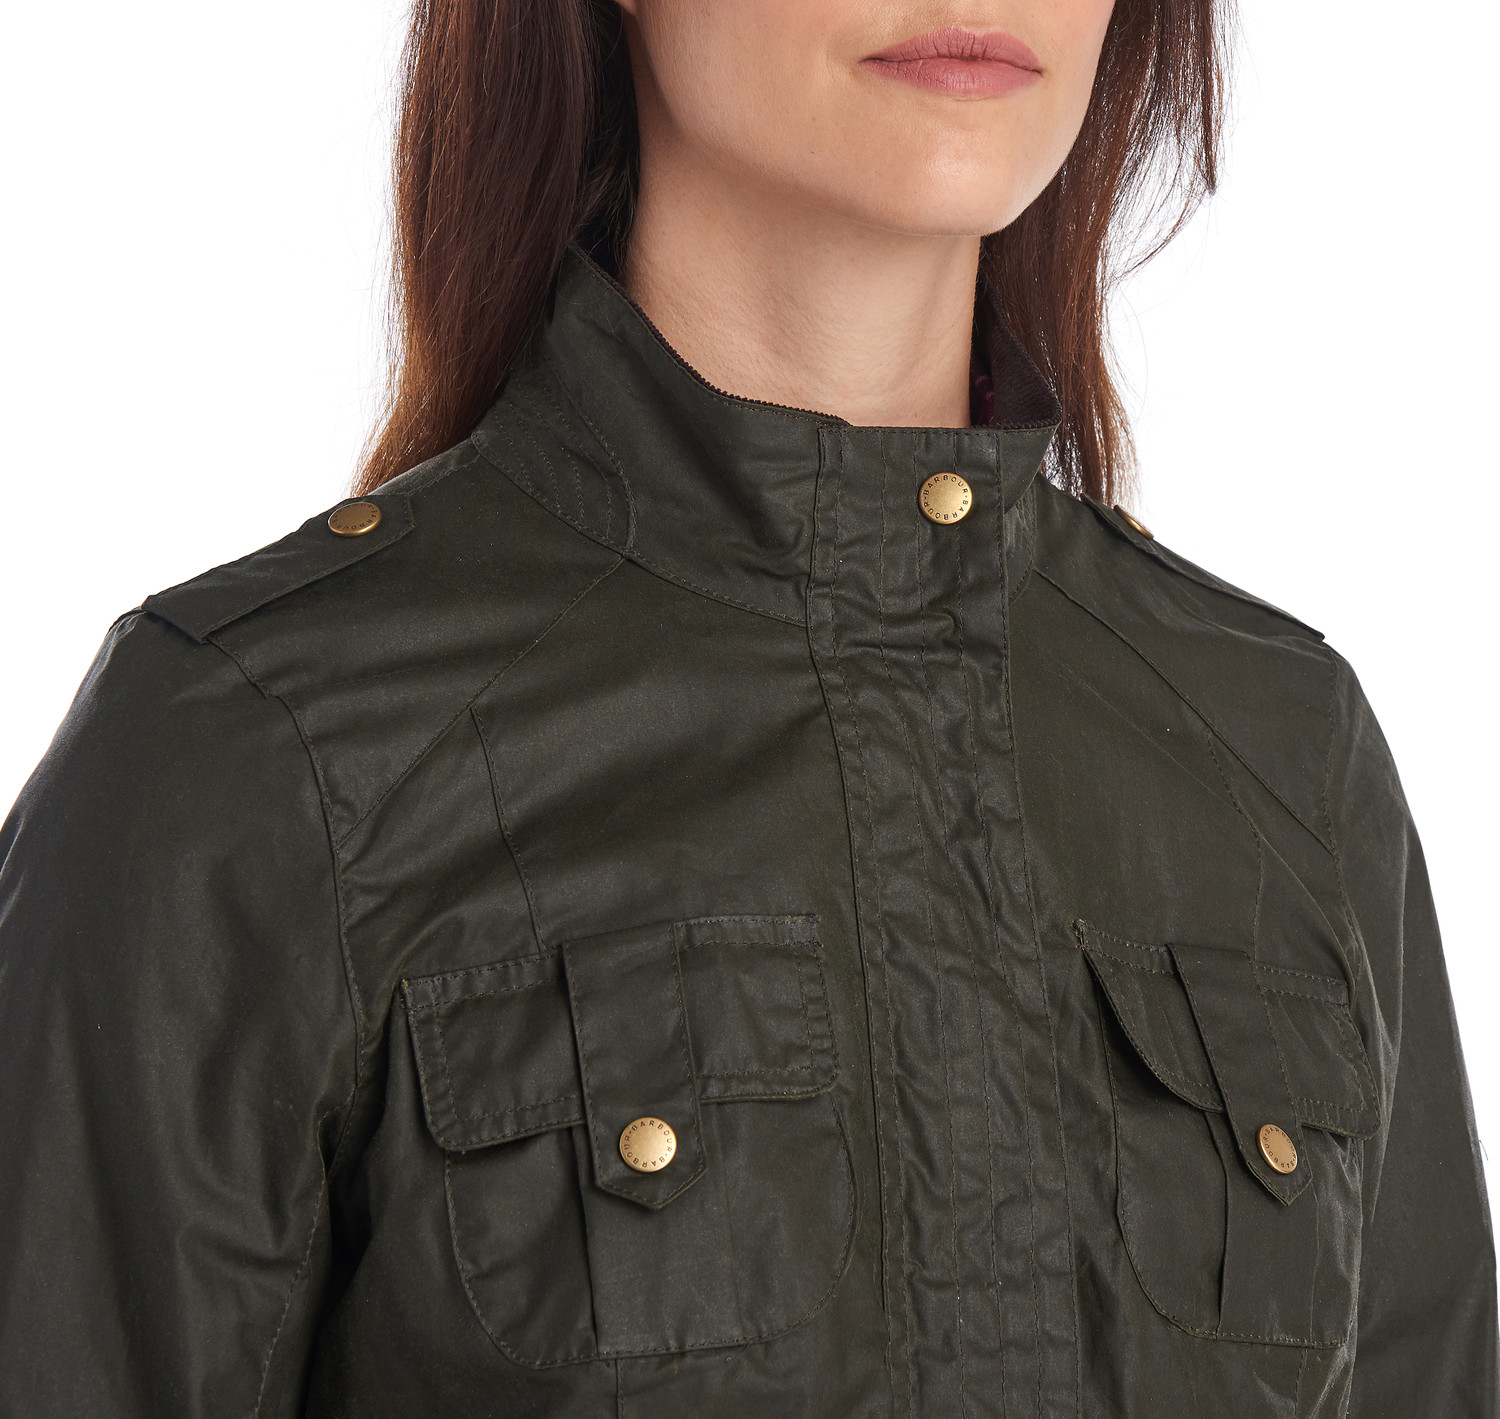 Barbour Defence Wax Jacket Olive - Forelock and Load